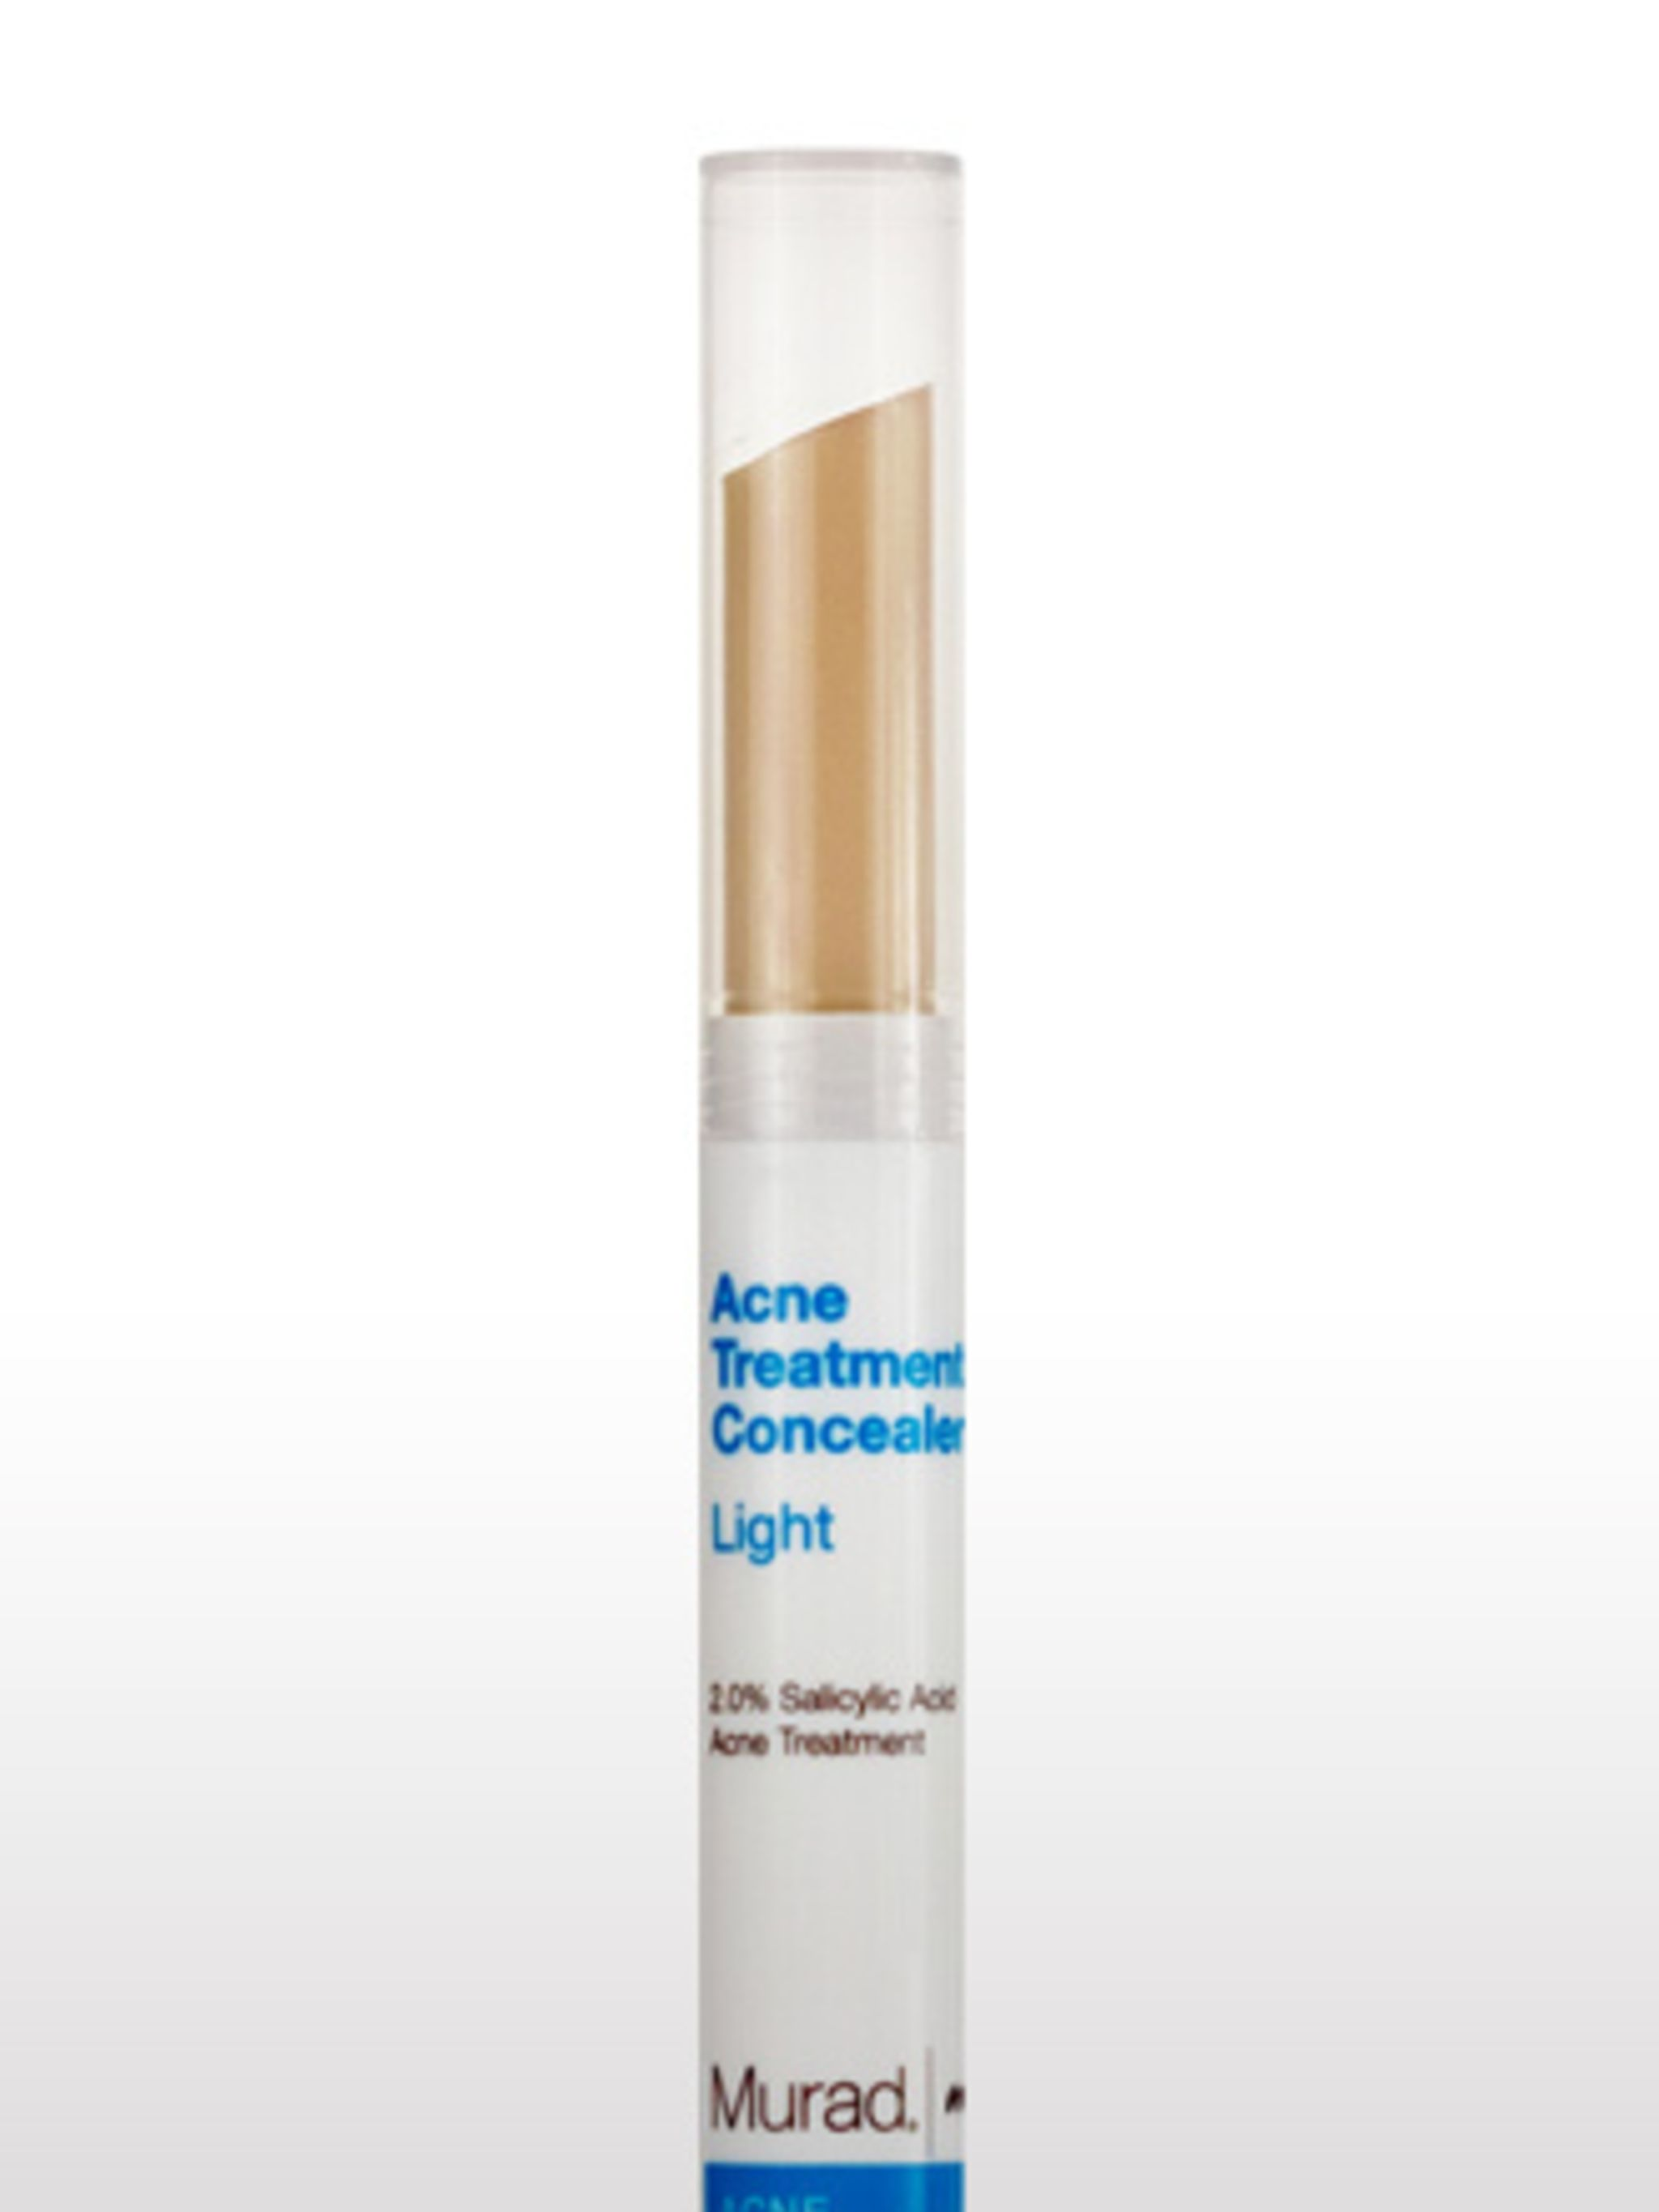 """<p>Acne Treatment Concealer, £12 by <a href=""""http://www.muraduk.com/index.php?page=contact"""">Murad</a></p><p>Murad's concealer is the perfect spot covering consistency and colour. Smelling reassuringly medicinal, without ever being overpowering, this conce"""